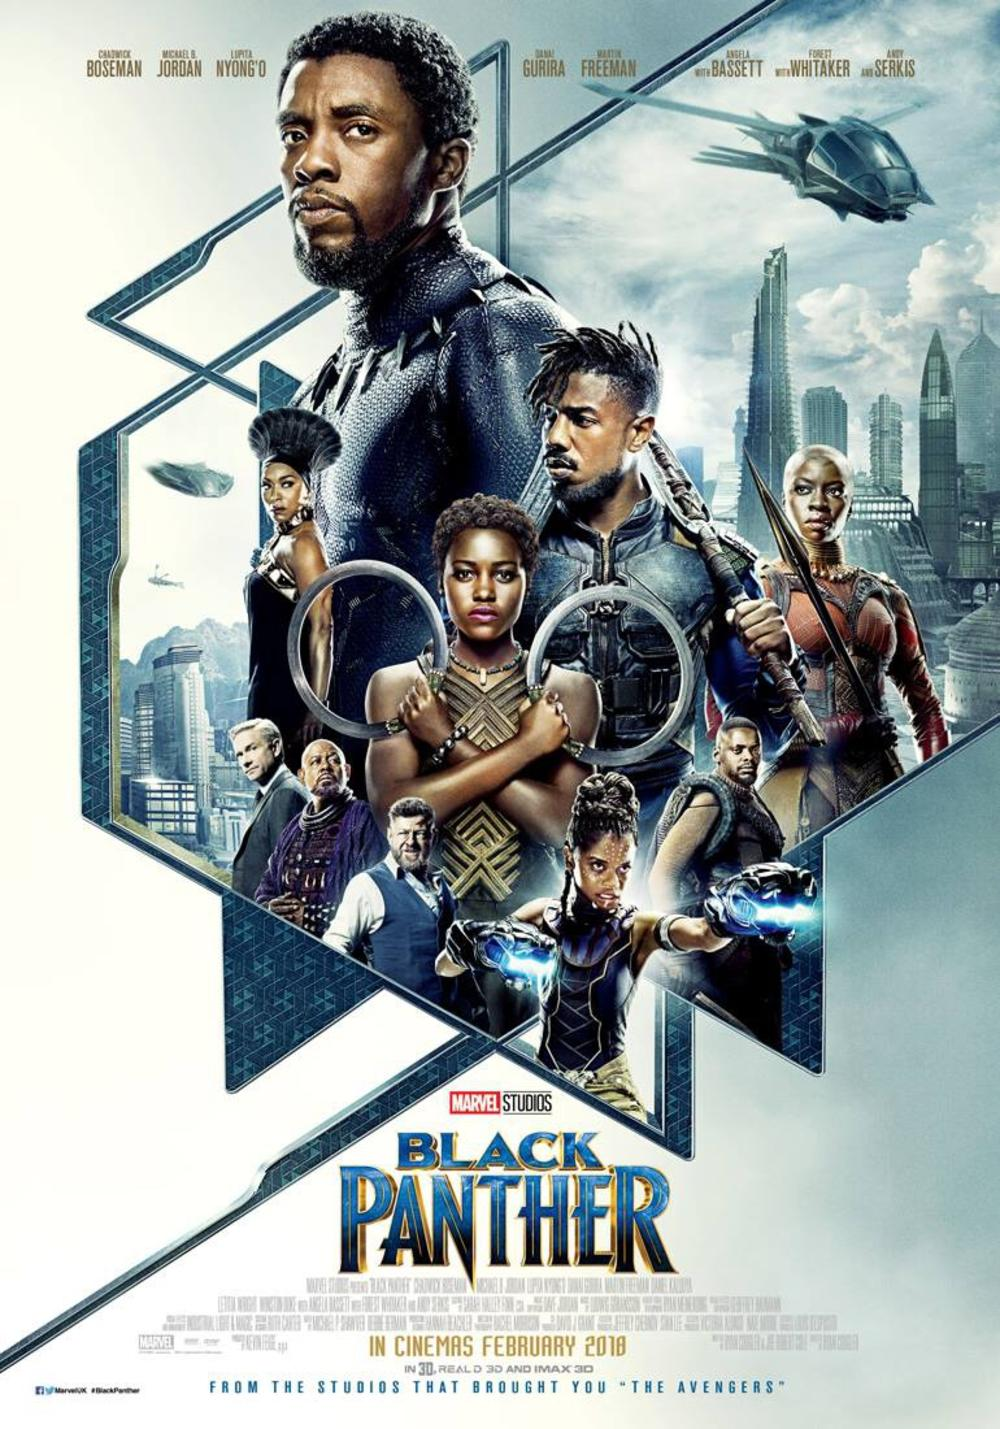 Black Panther: Uneasy lies the head that we..